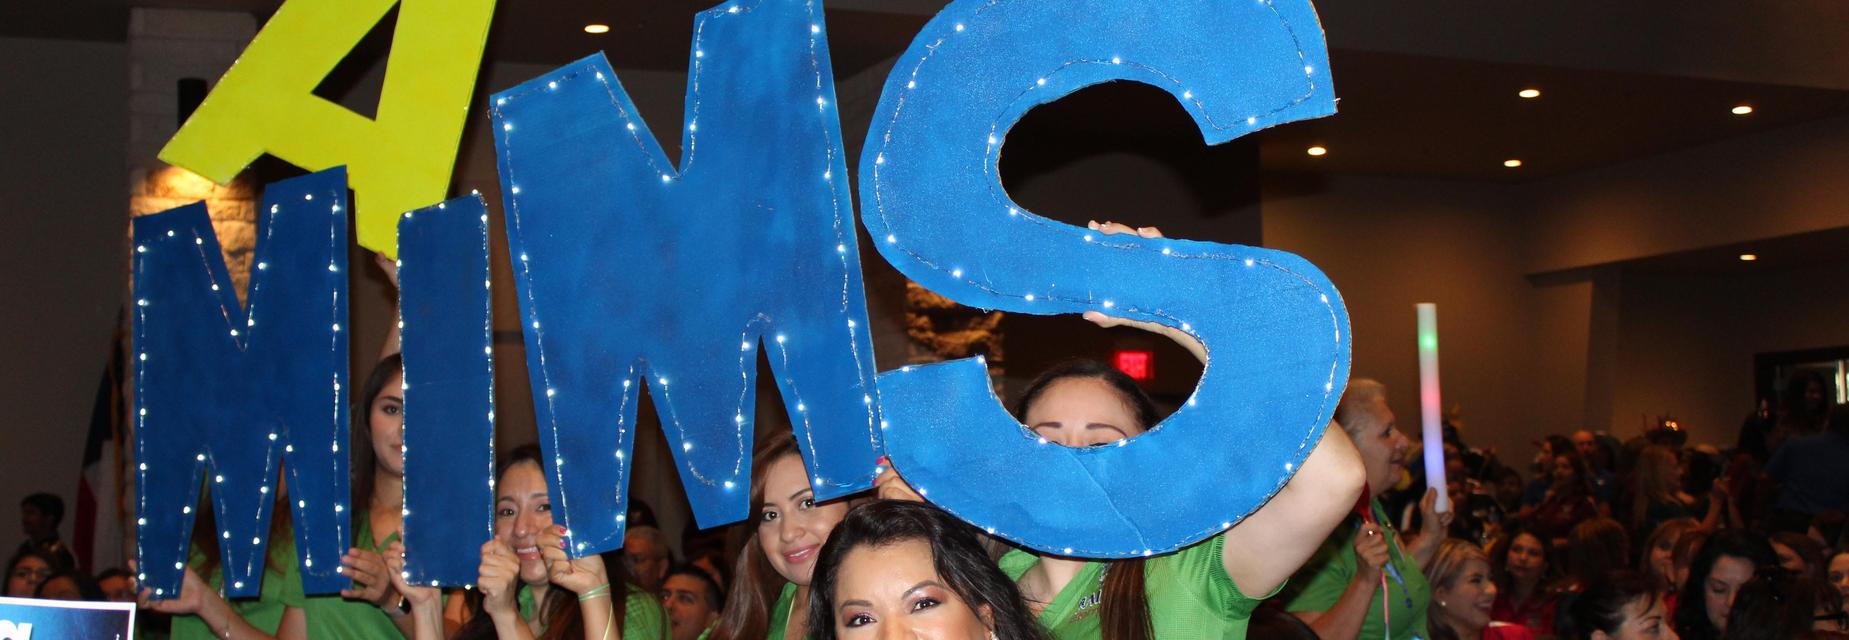 big blue letters with lights spelling Mims